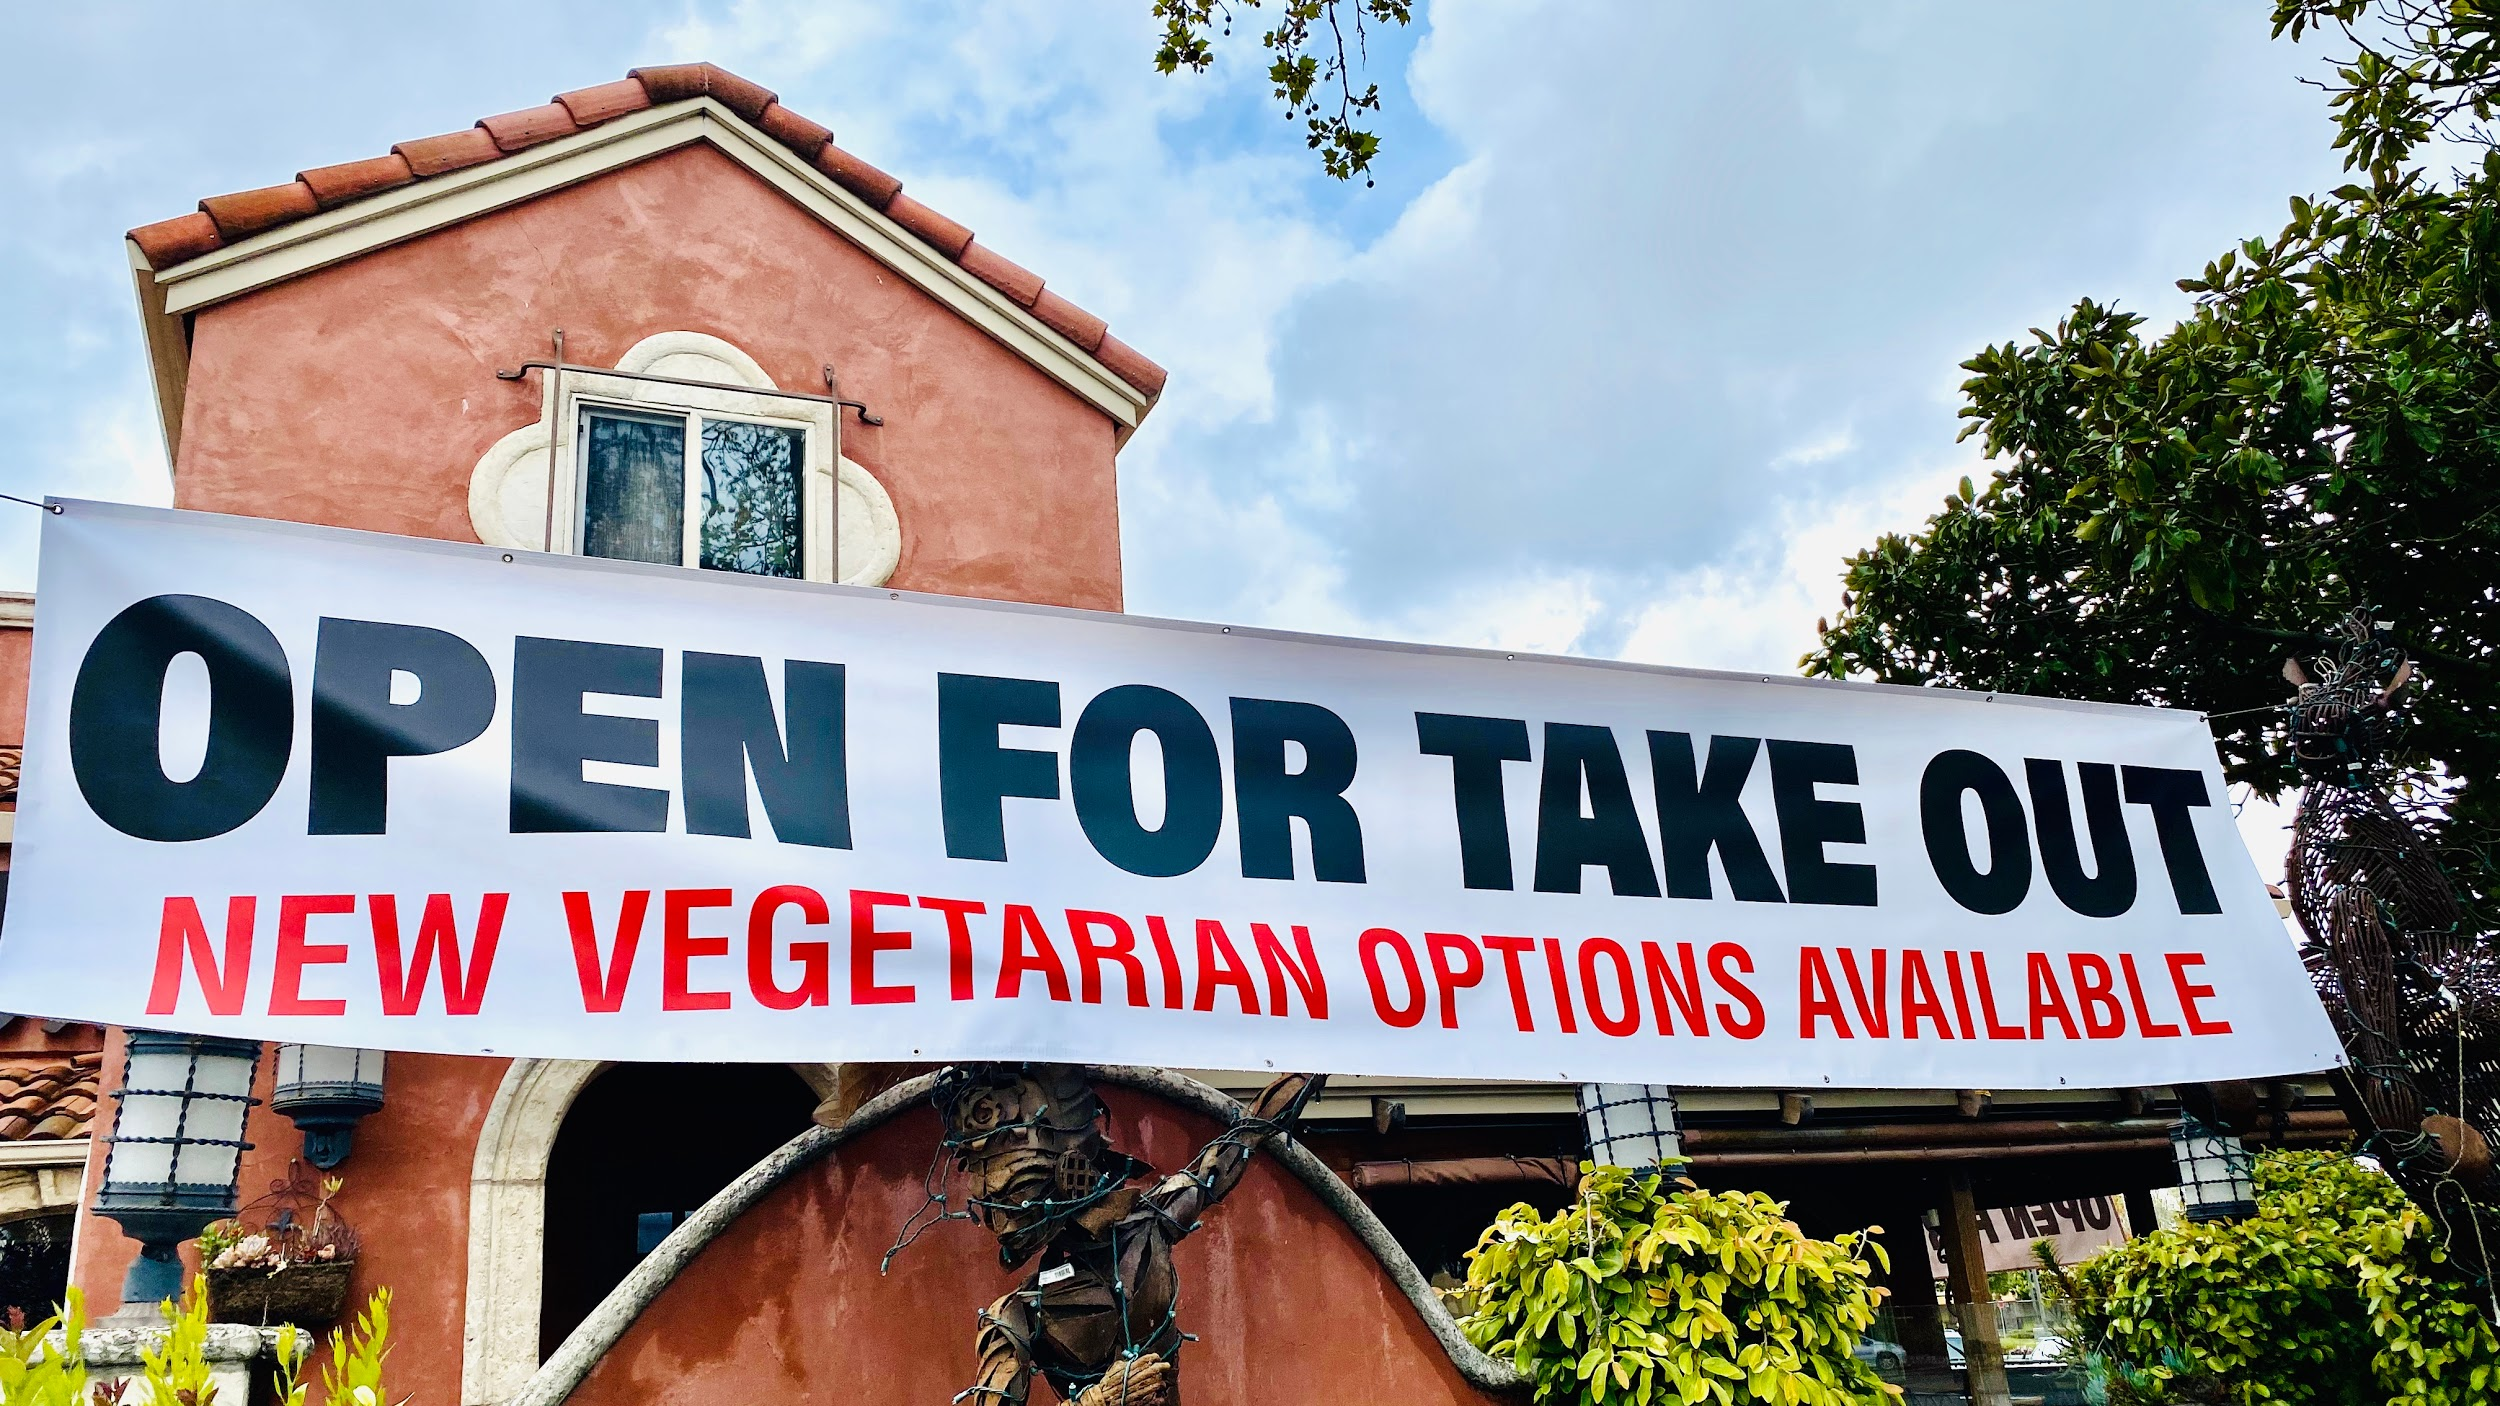 Open for take out restaurant banner